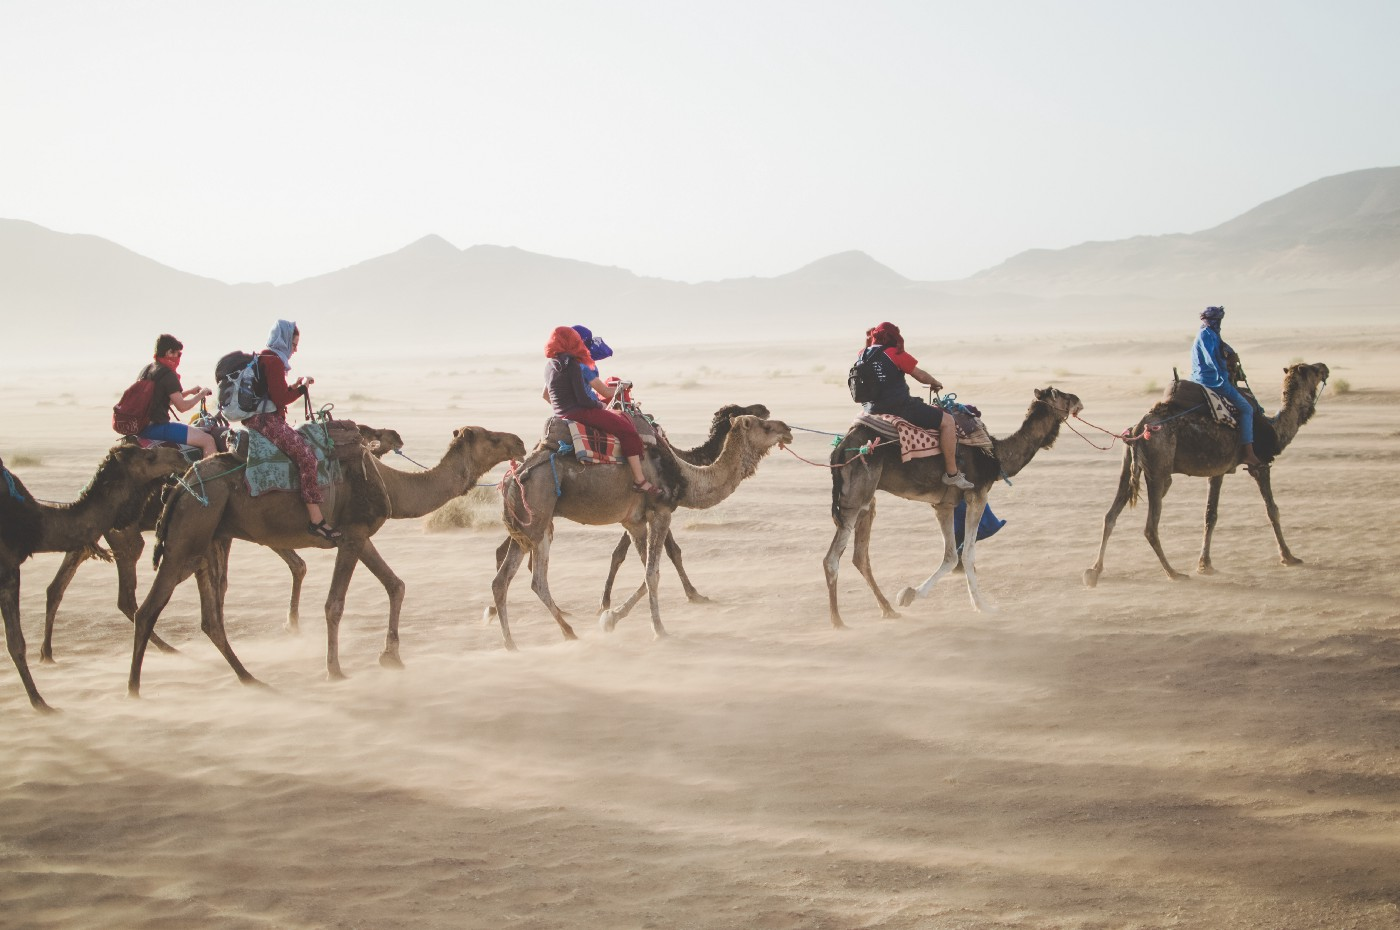 A family riding through the desert on camels